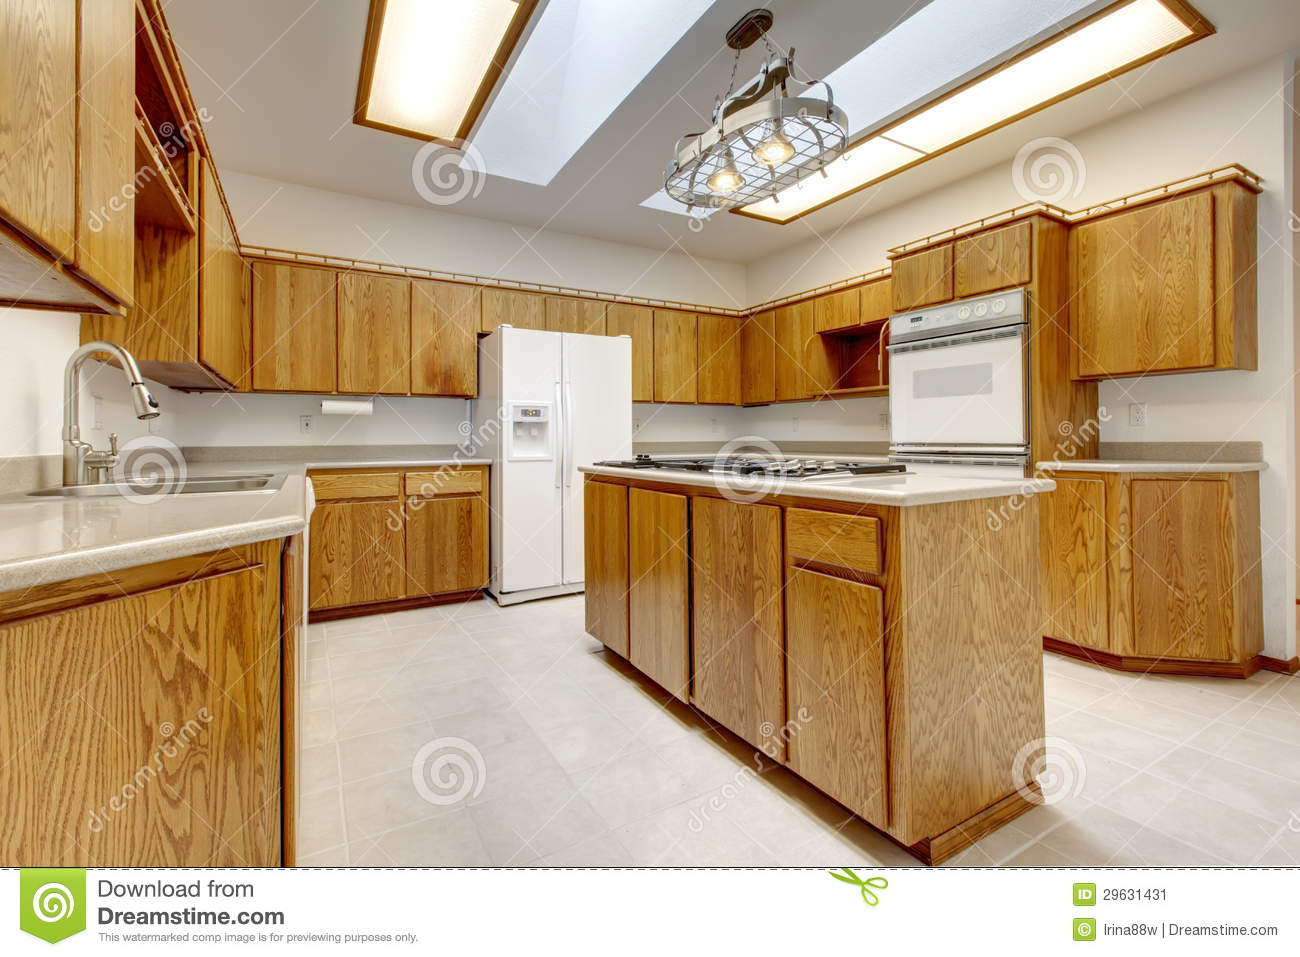 Wood Kitchen With Island Without Windows With Bright Light Stock